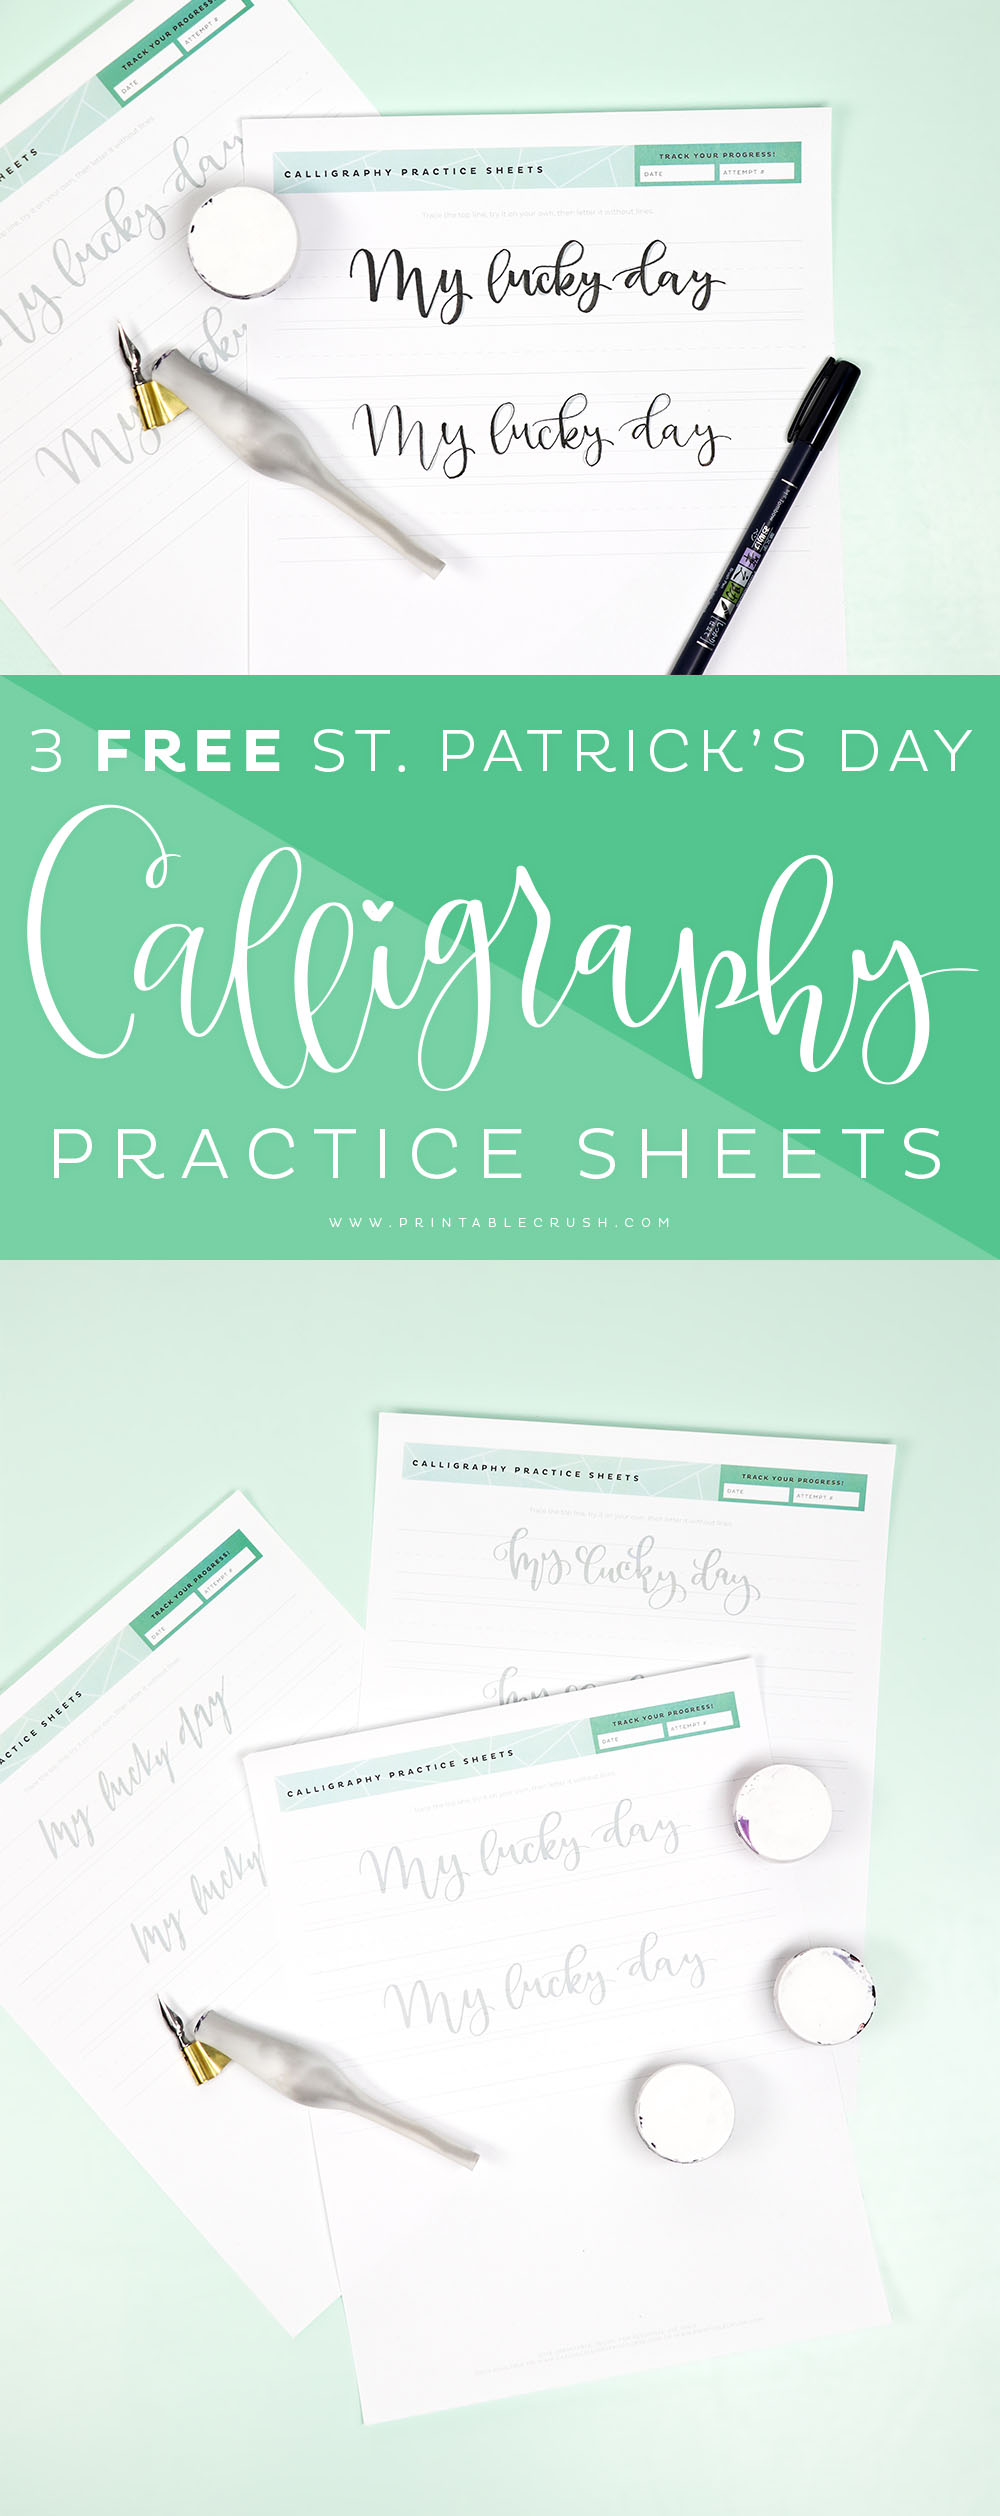 Practice your calligraphy with these 3 FREE St. Patrick's Day Calligraphy Practice Sheets!